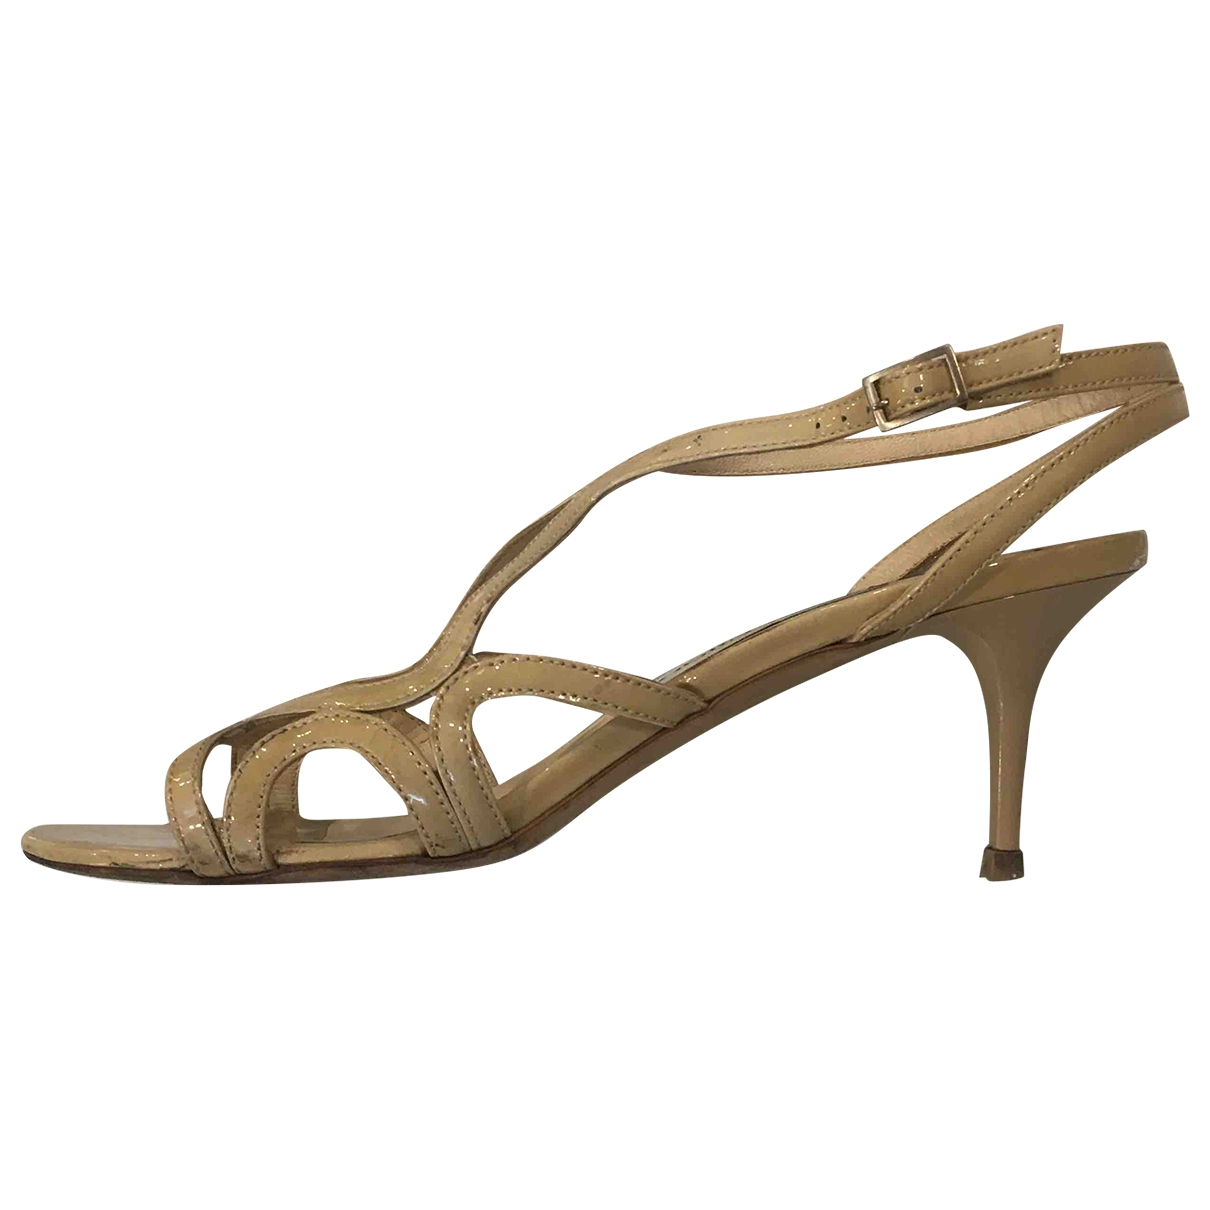 Jimmy Choo \N Beige Patent leather Sandals for Women 38.5 EU